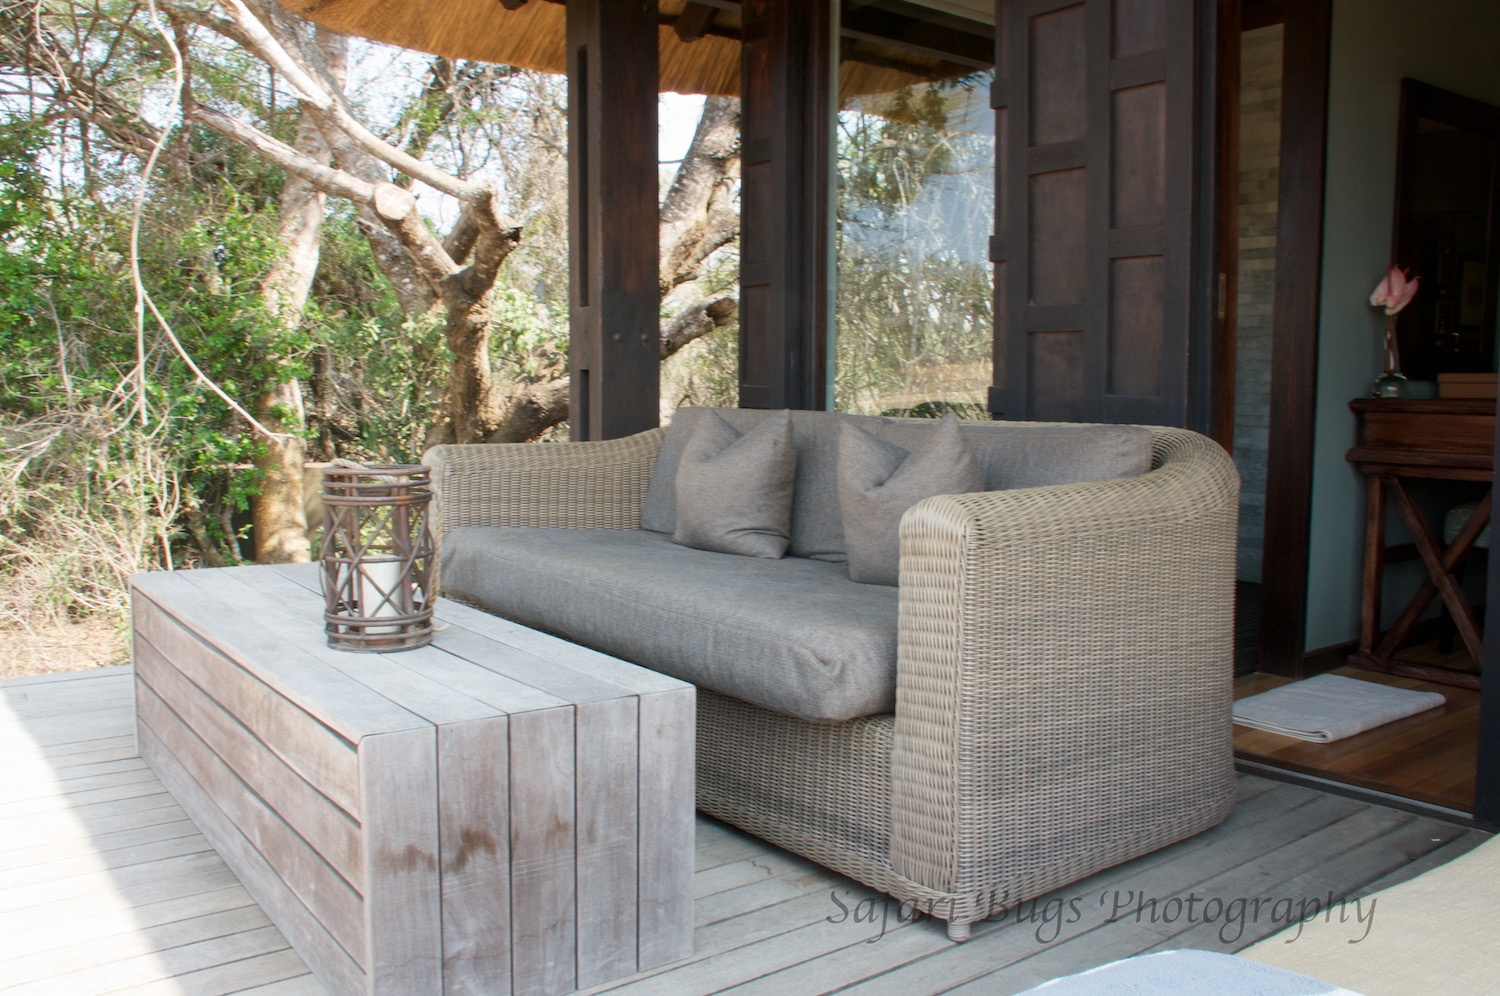 The outdoor seating area, perfect for lounging mid day.